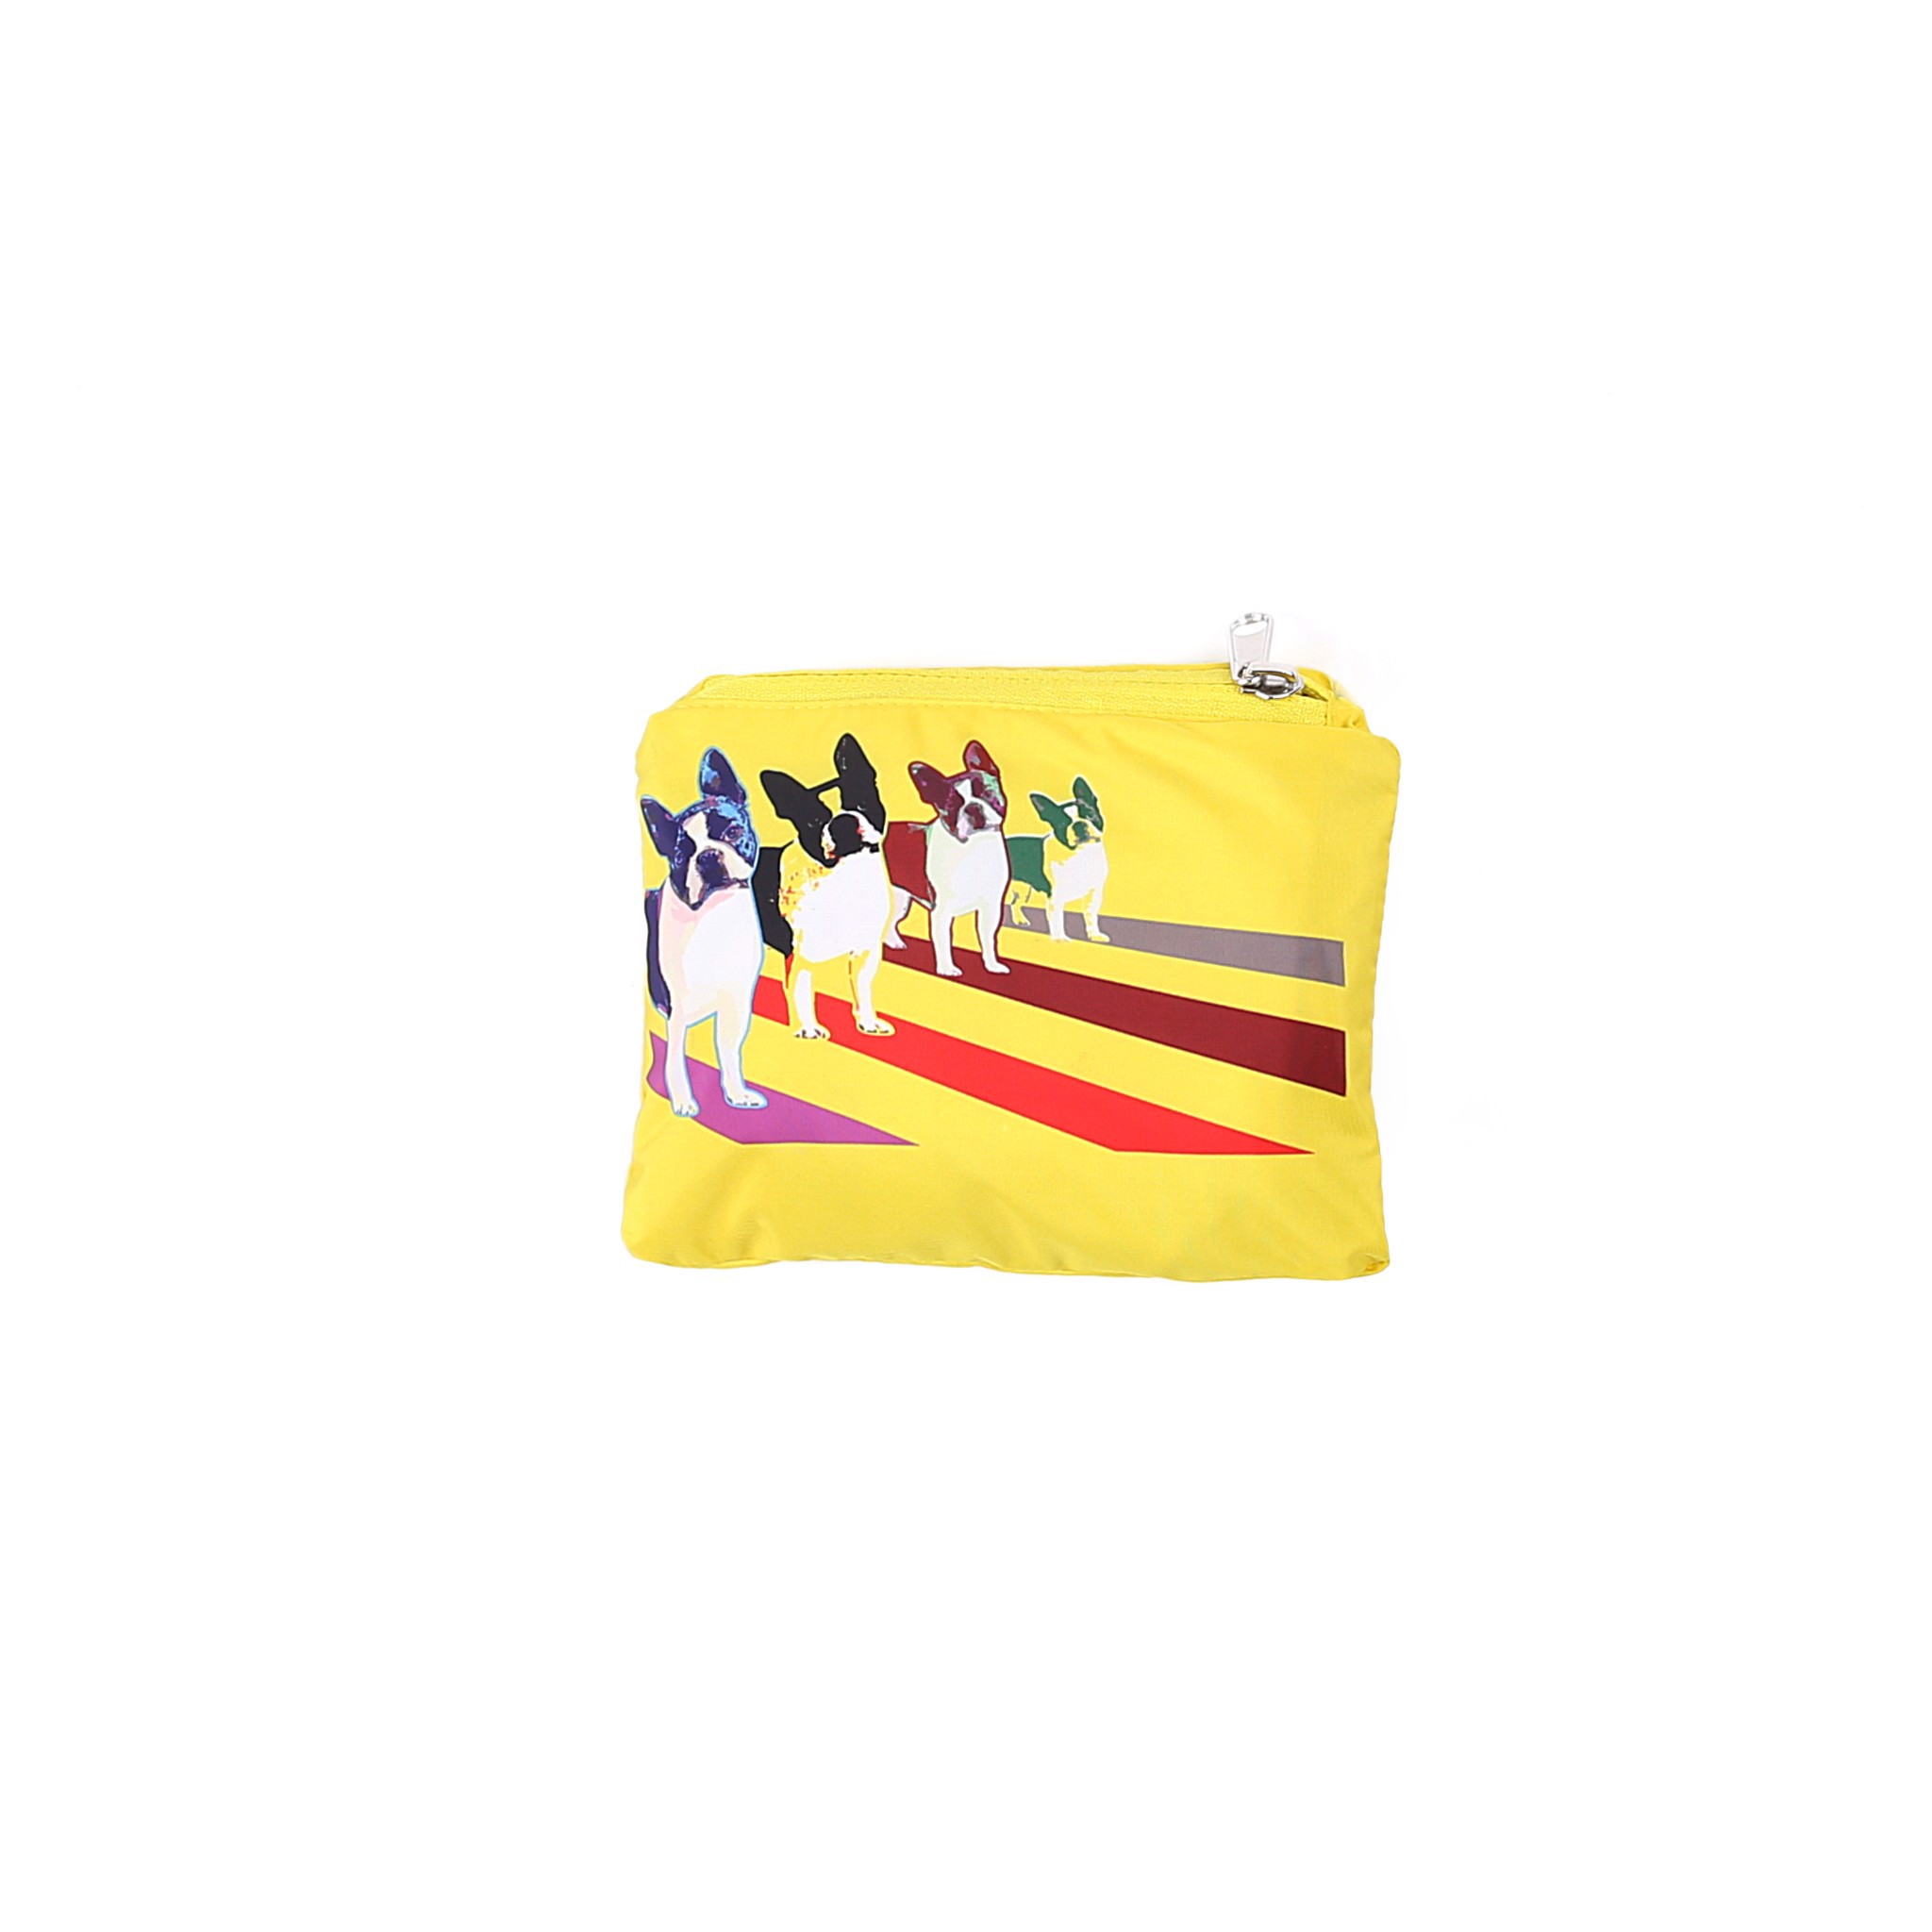 Túi xox small bag 4 pull dogs yellow